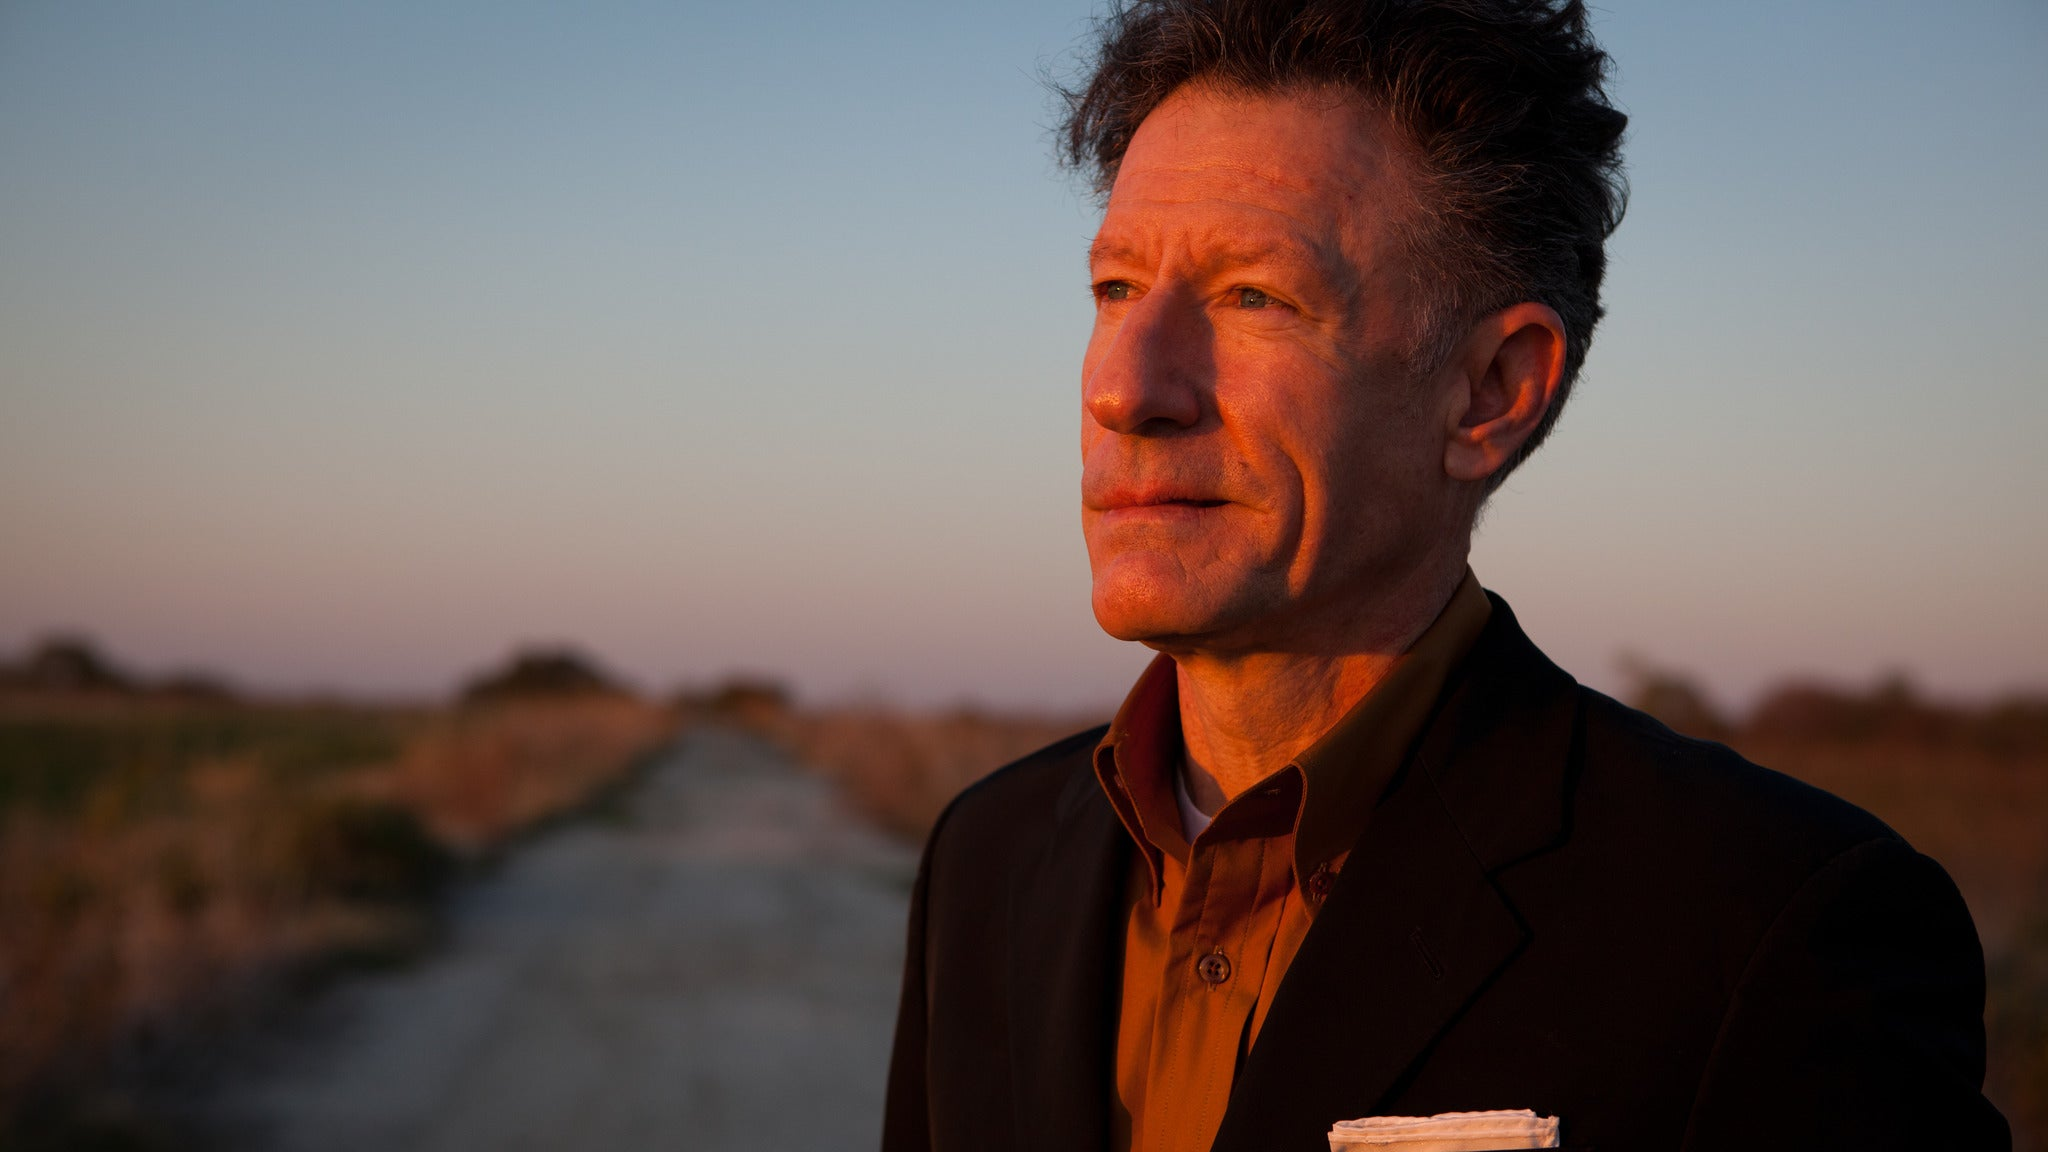 Lyle Lovett at Christopher Cohan Performing Arts Center